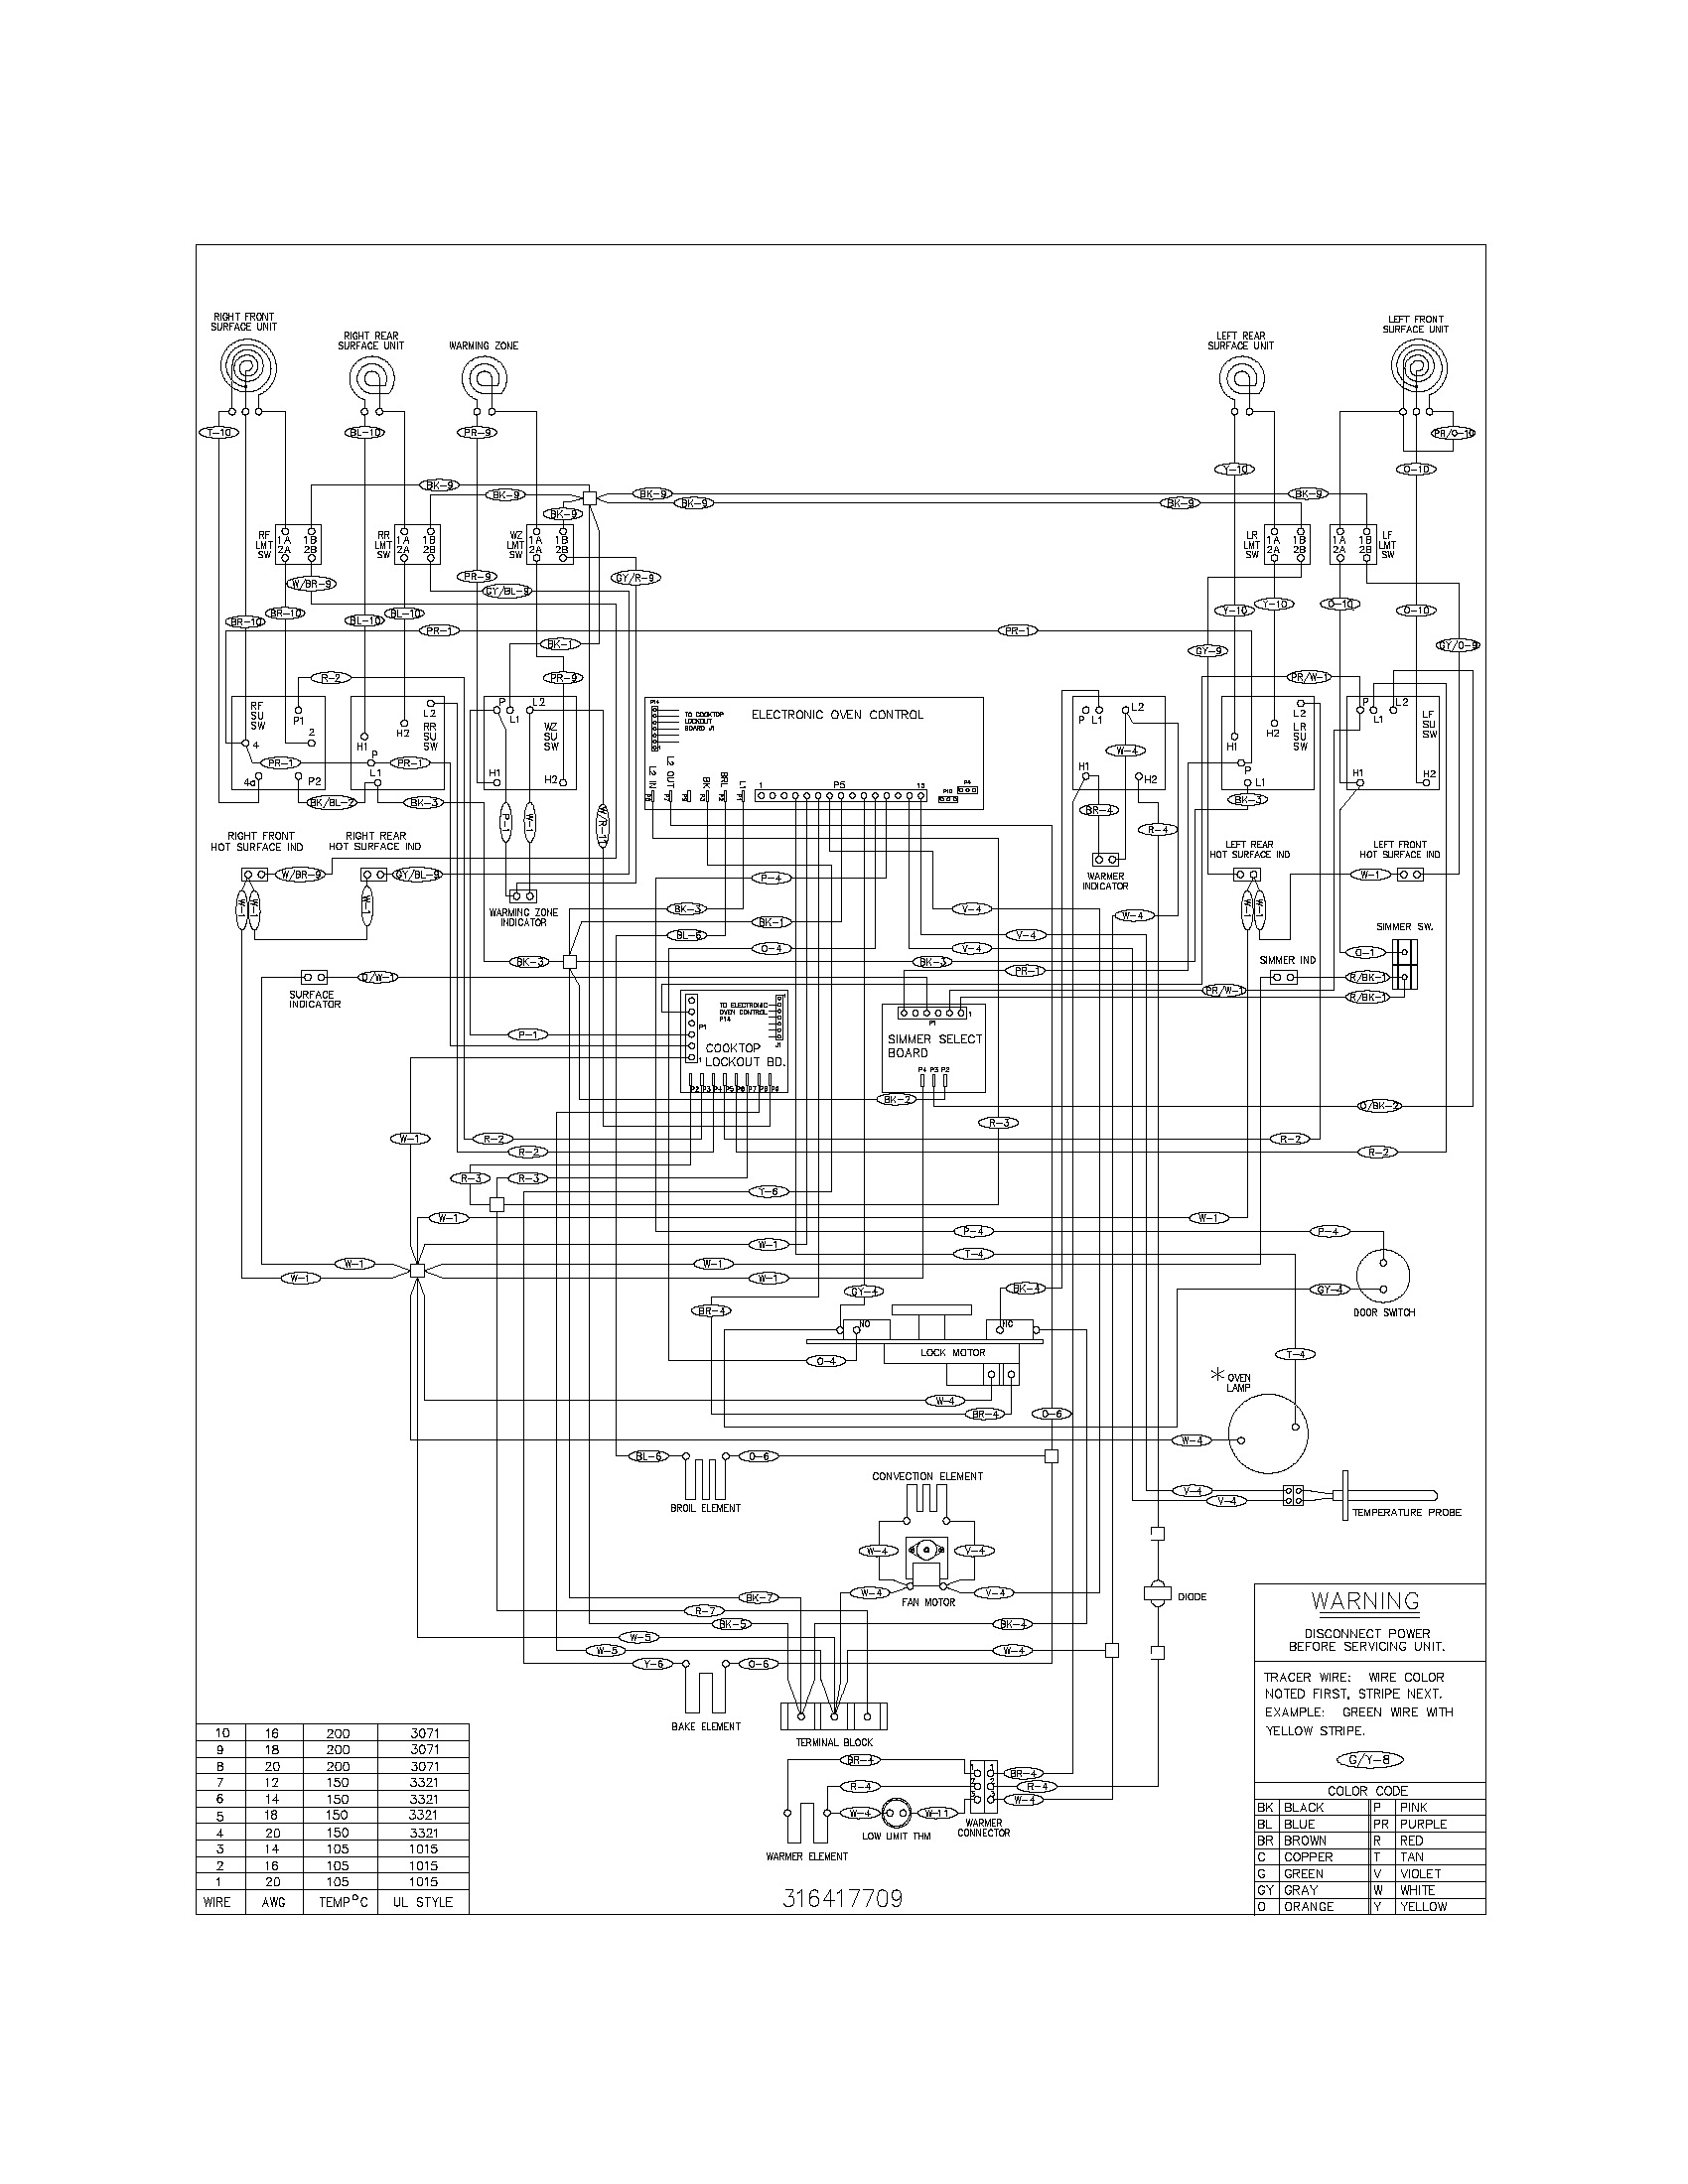 electric range wiring diagram electric range wiring diagram free download #13